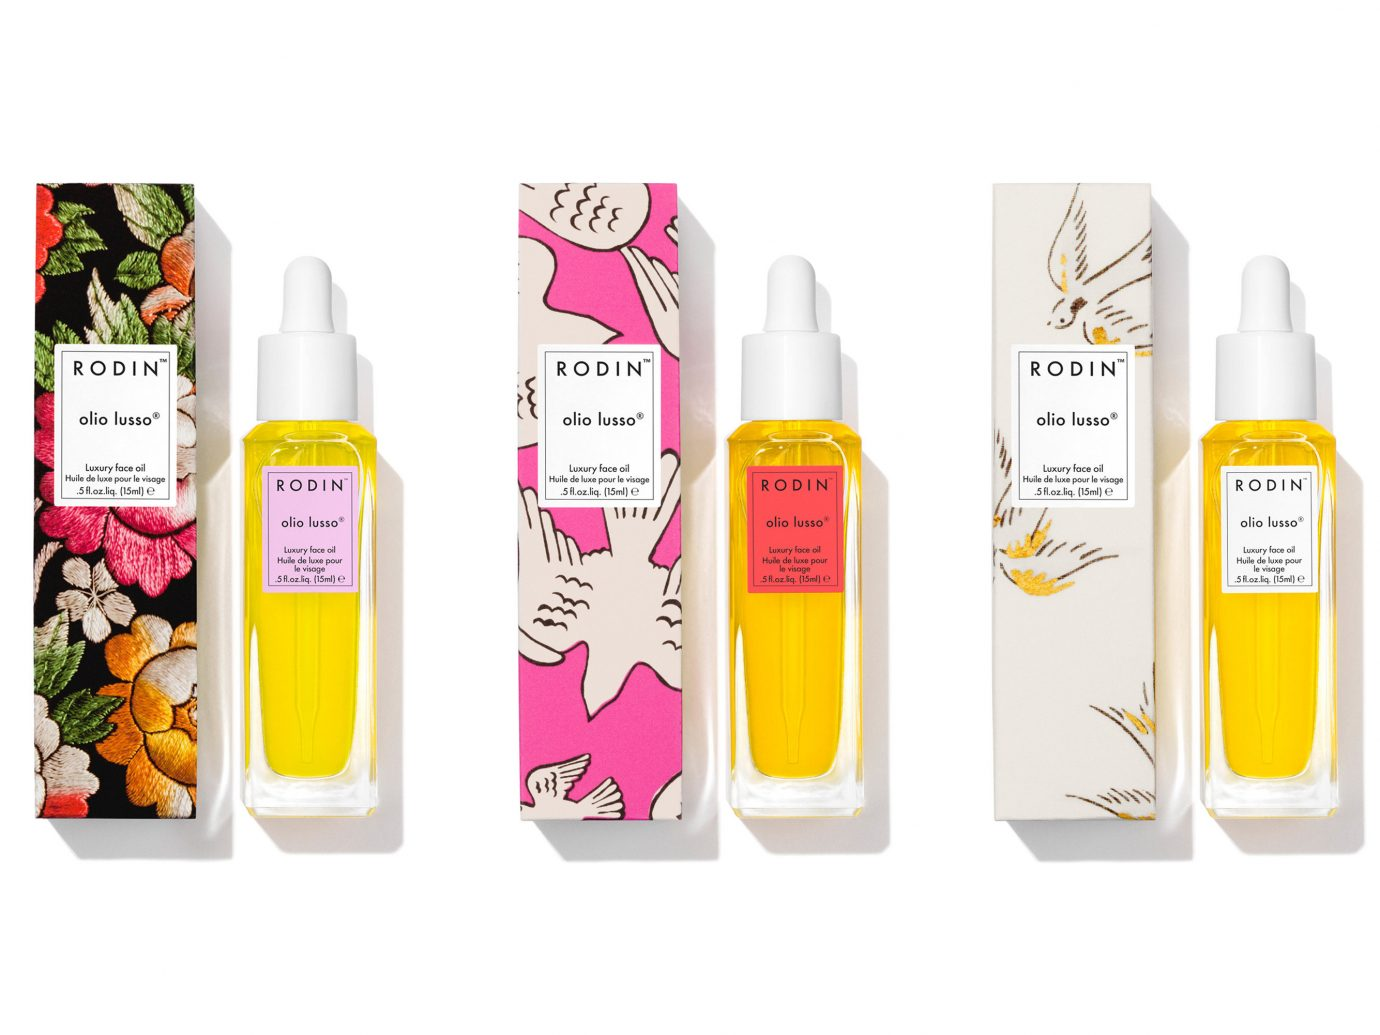 Beauty Health + Wellness Travel Shop bottle product yellow product design health & beauty perfume skin care different lotion several